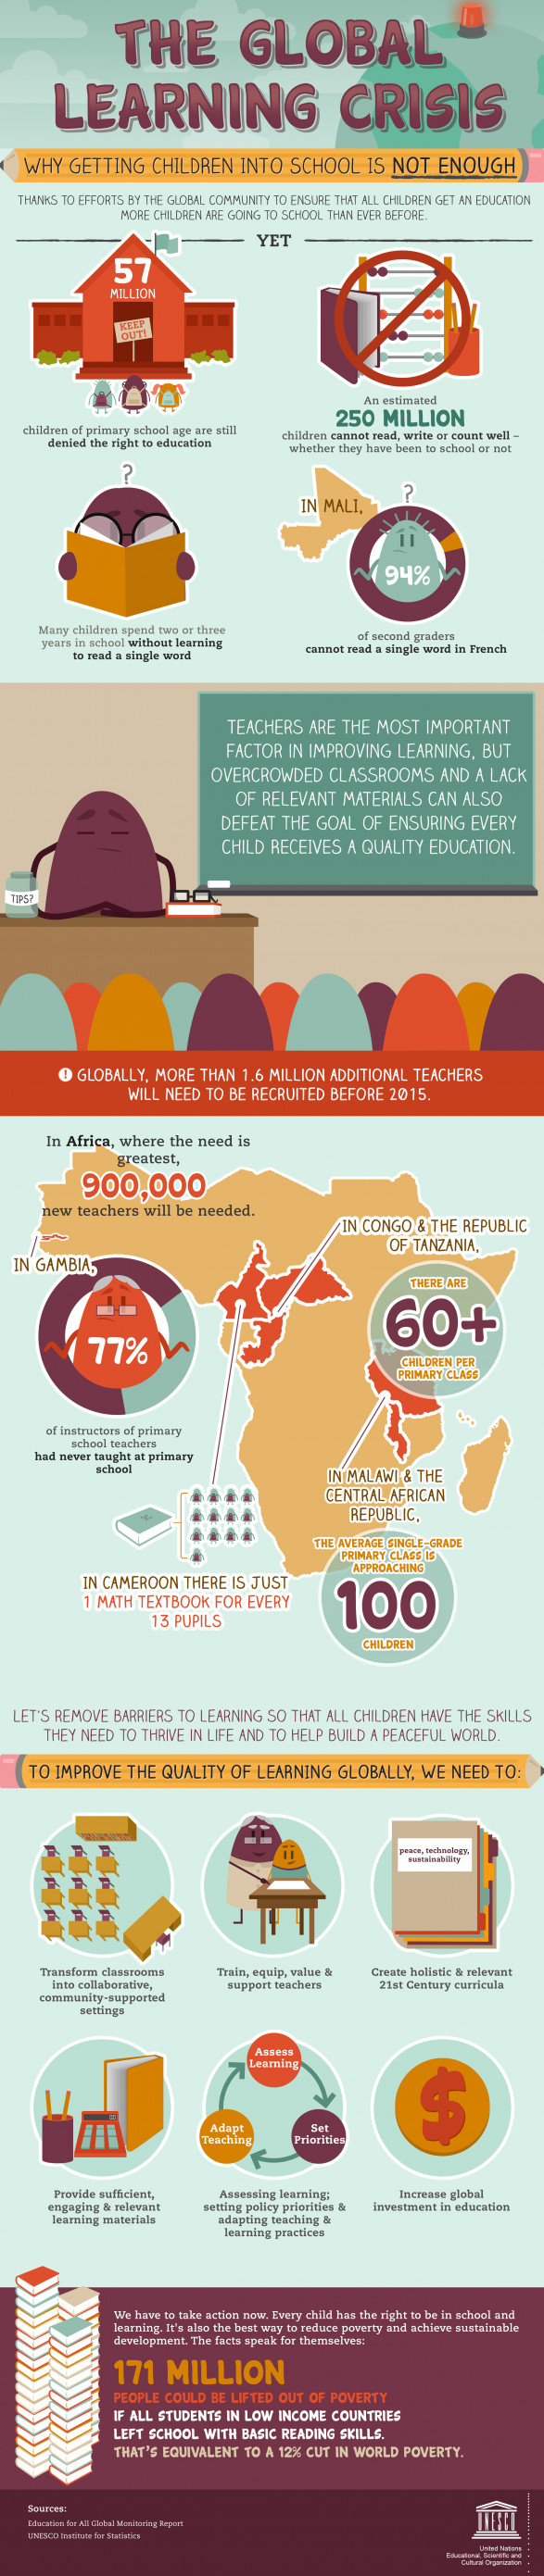 The Global Learning Crisis